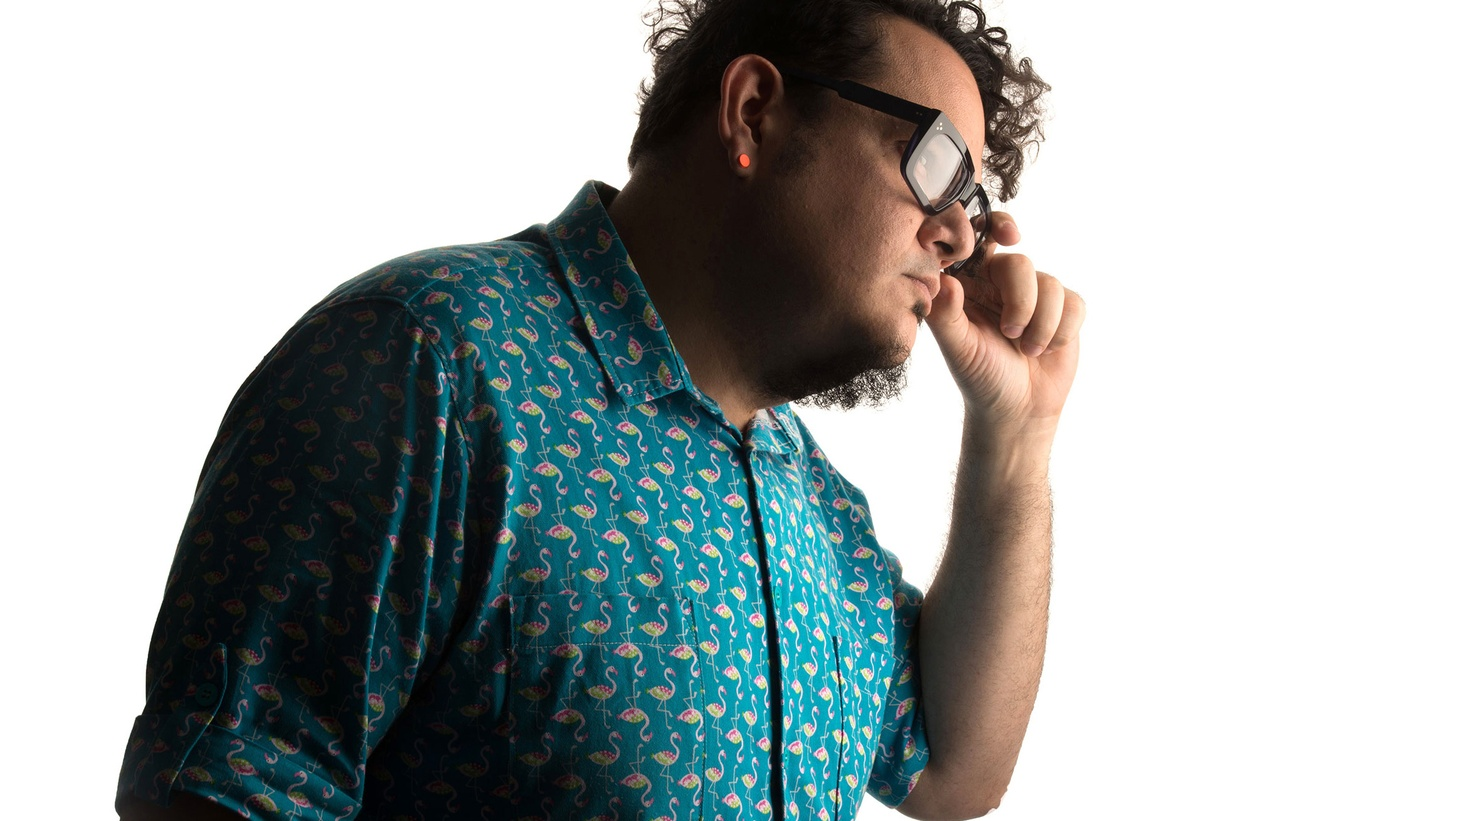 Venezuelan artist and producer Mr. Pauer is celebrated for his signature Electrópico sound, a mix of electronic and Tropical sound.